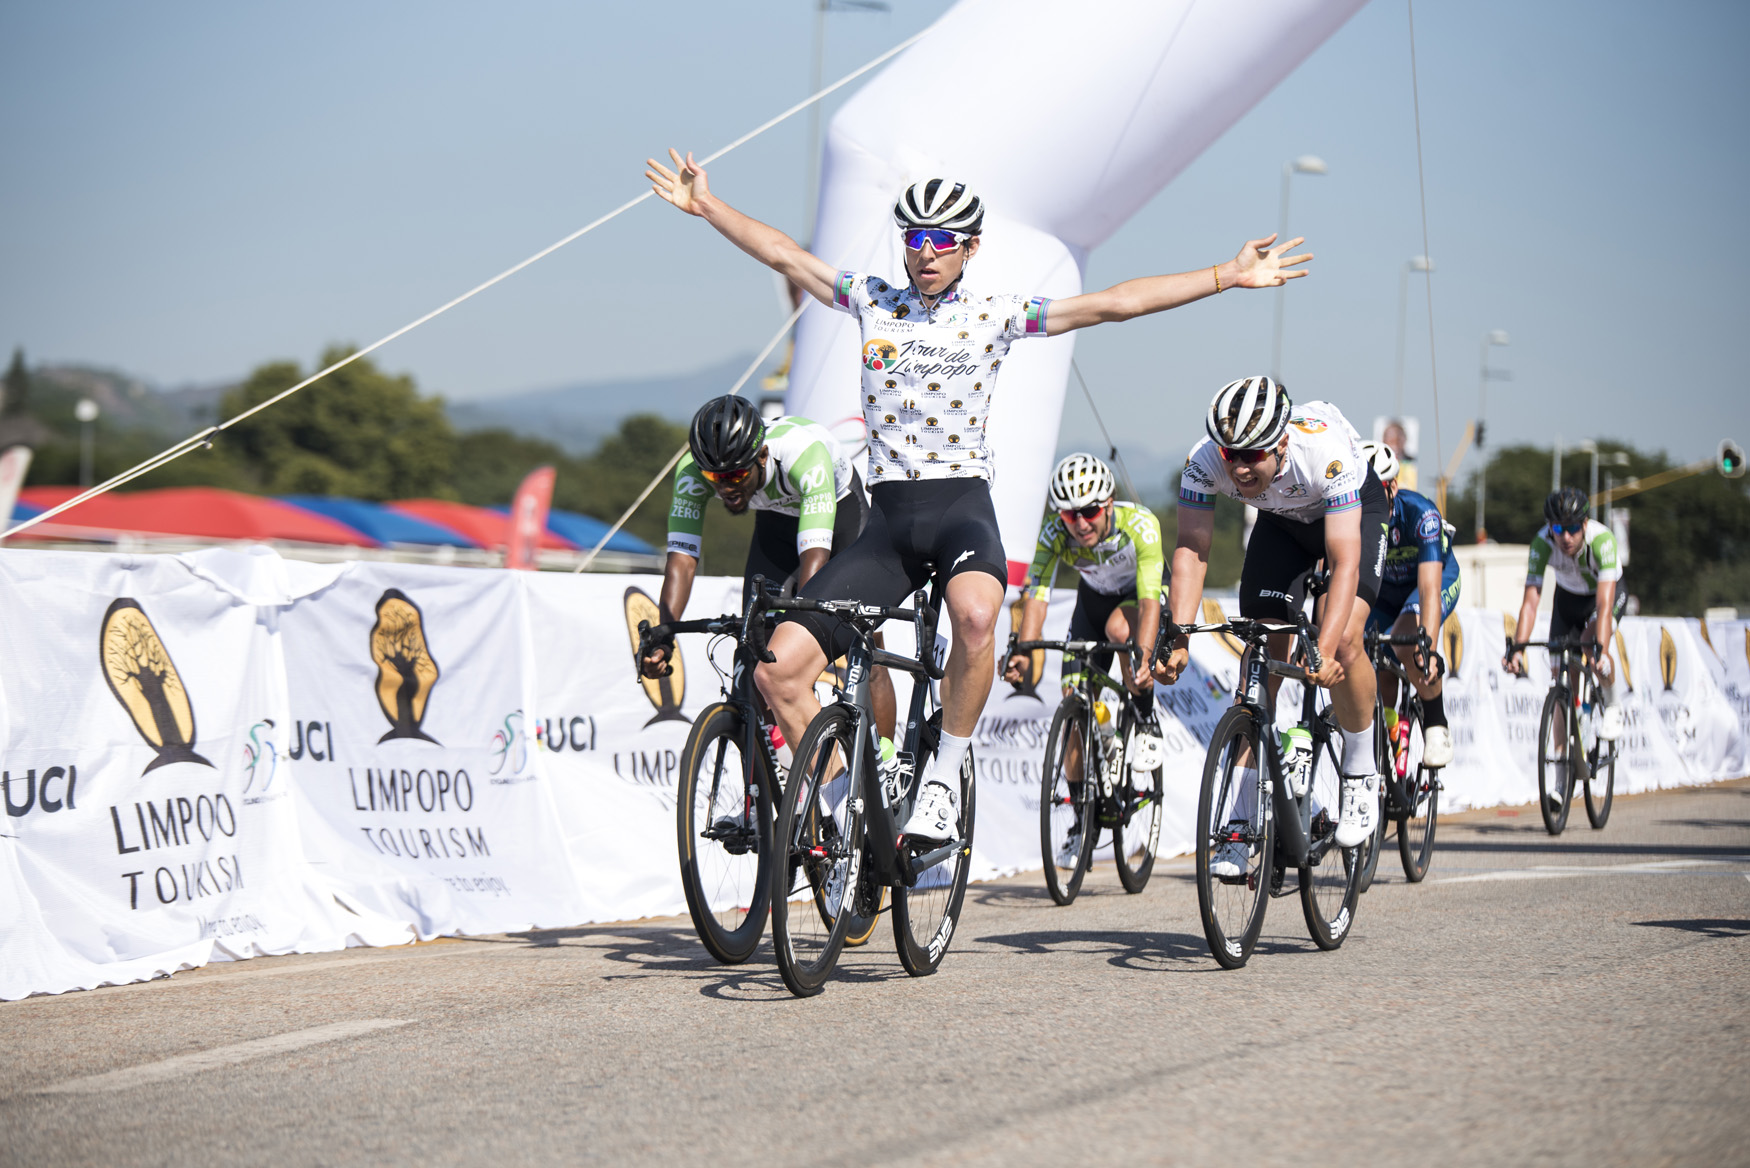 Team Dimension Data Continental's Connor Brown raises his arms in victory after winning the stage in 2:16:46 from Polokwane to Tzaneen on Stage 2 of the 2019 Tour de Limpopo (UCI 2.2) from 14-18 May © Tour de Limpopo/Andrew Mc Fadden